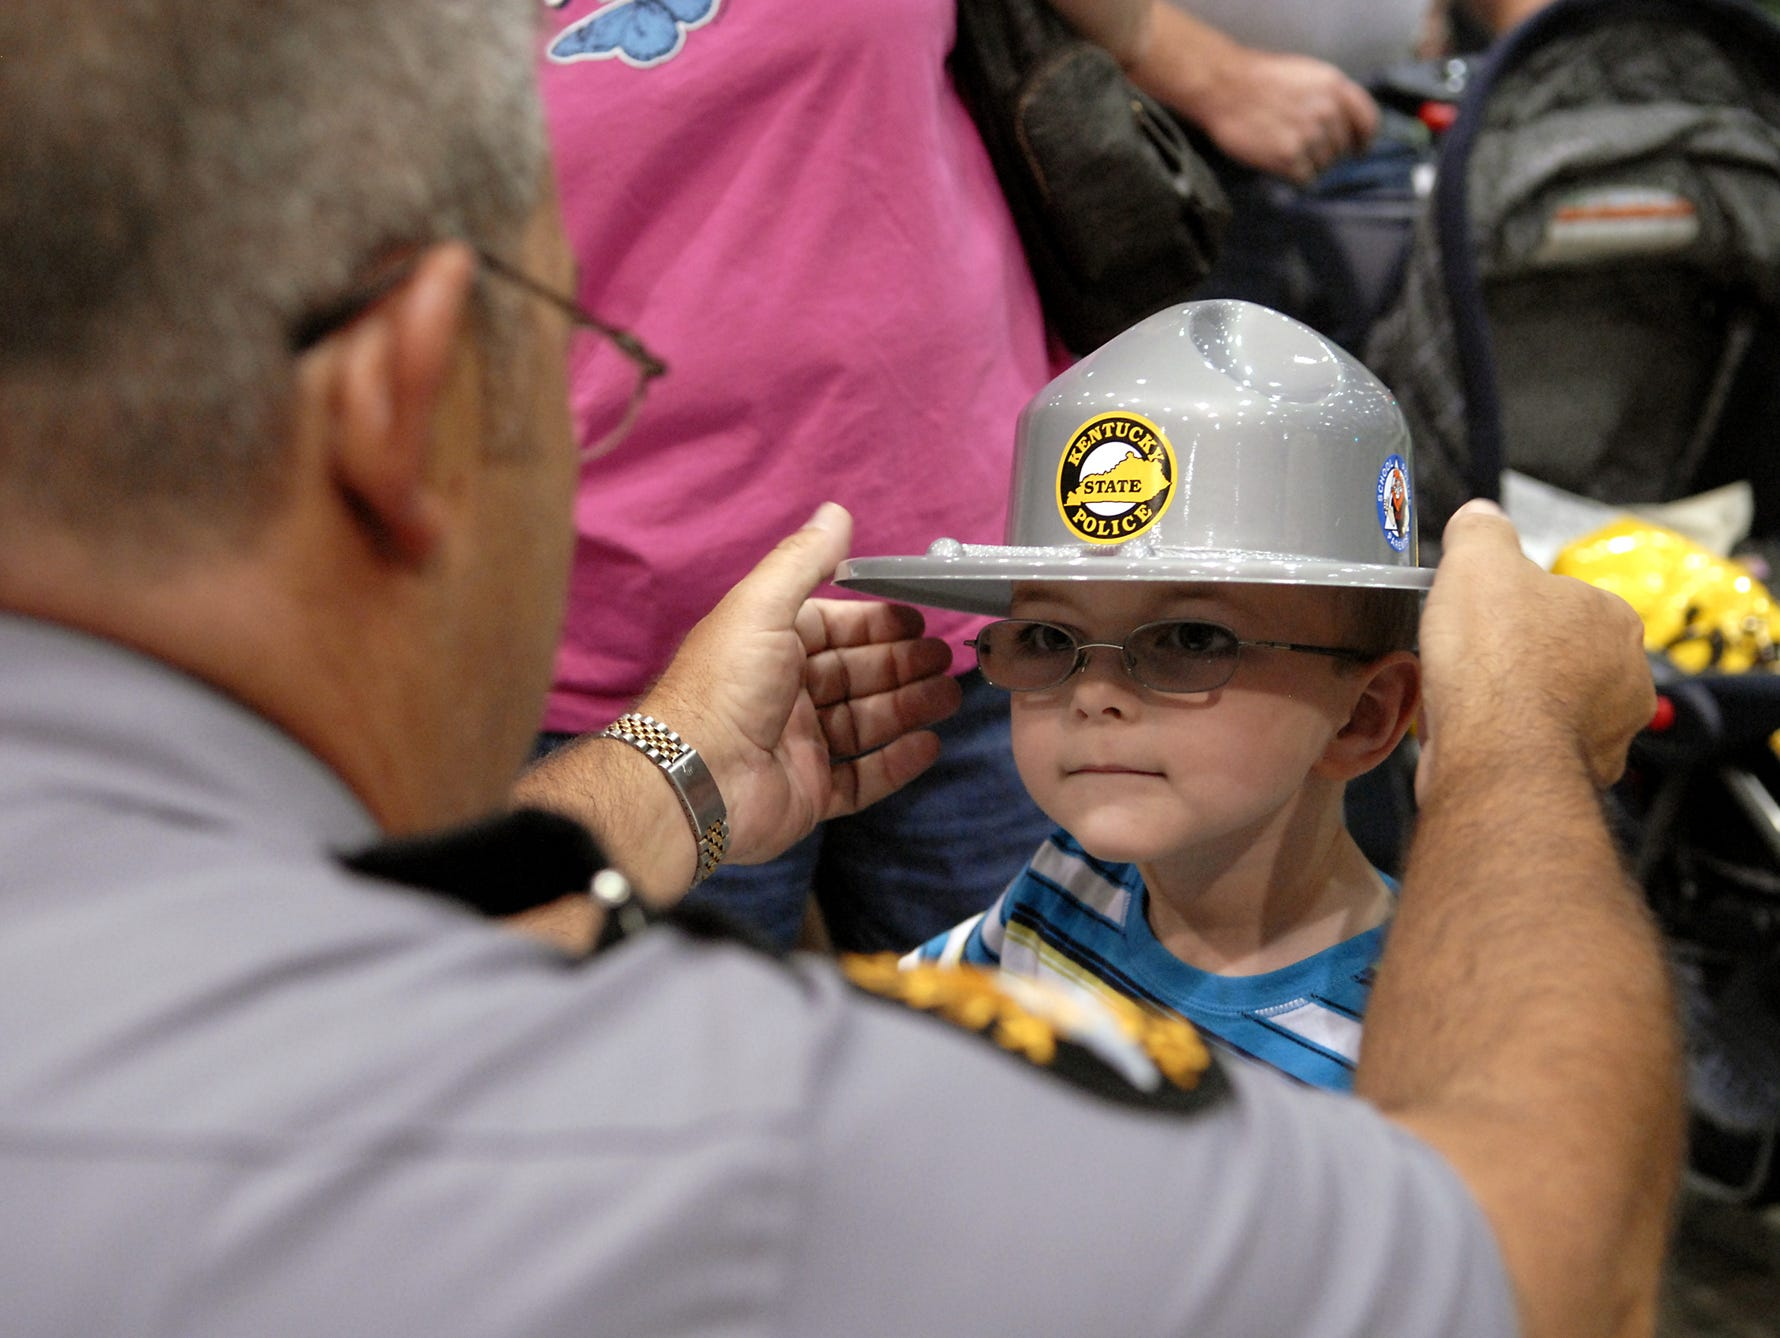 Trooper Chip Perry handed out a replica of the Kentucky State Police hat to Cameron Williamson, 4.